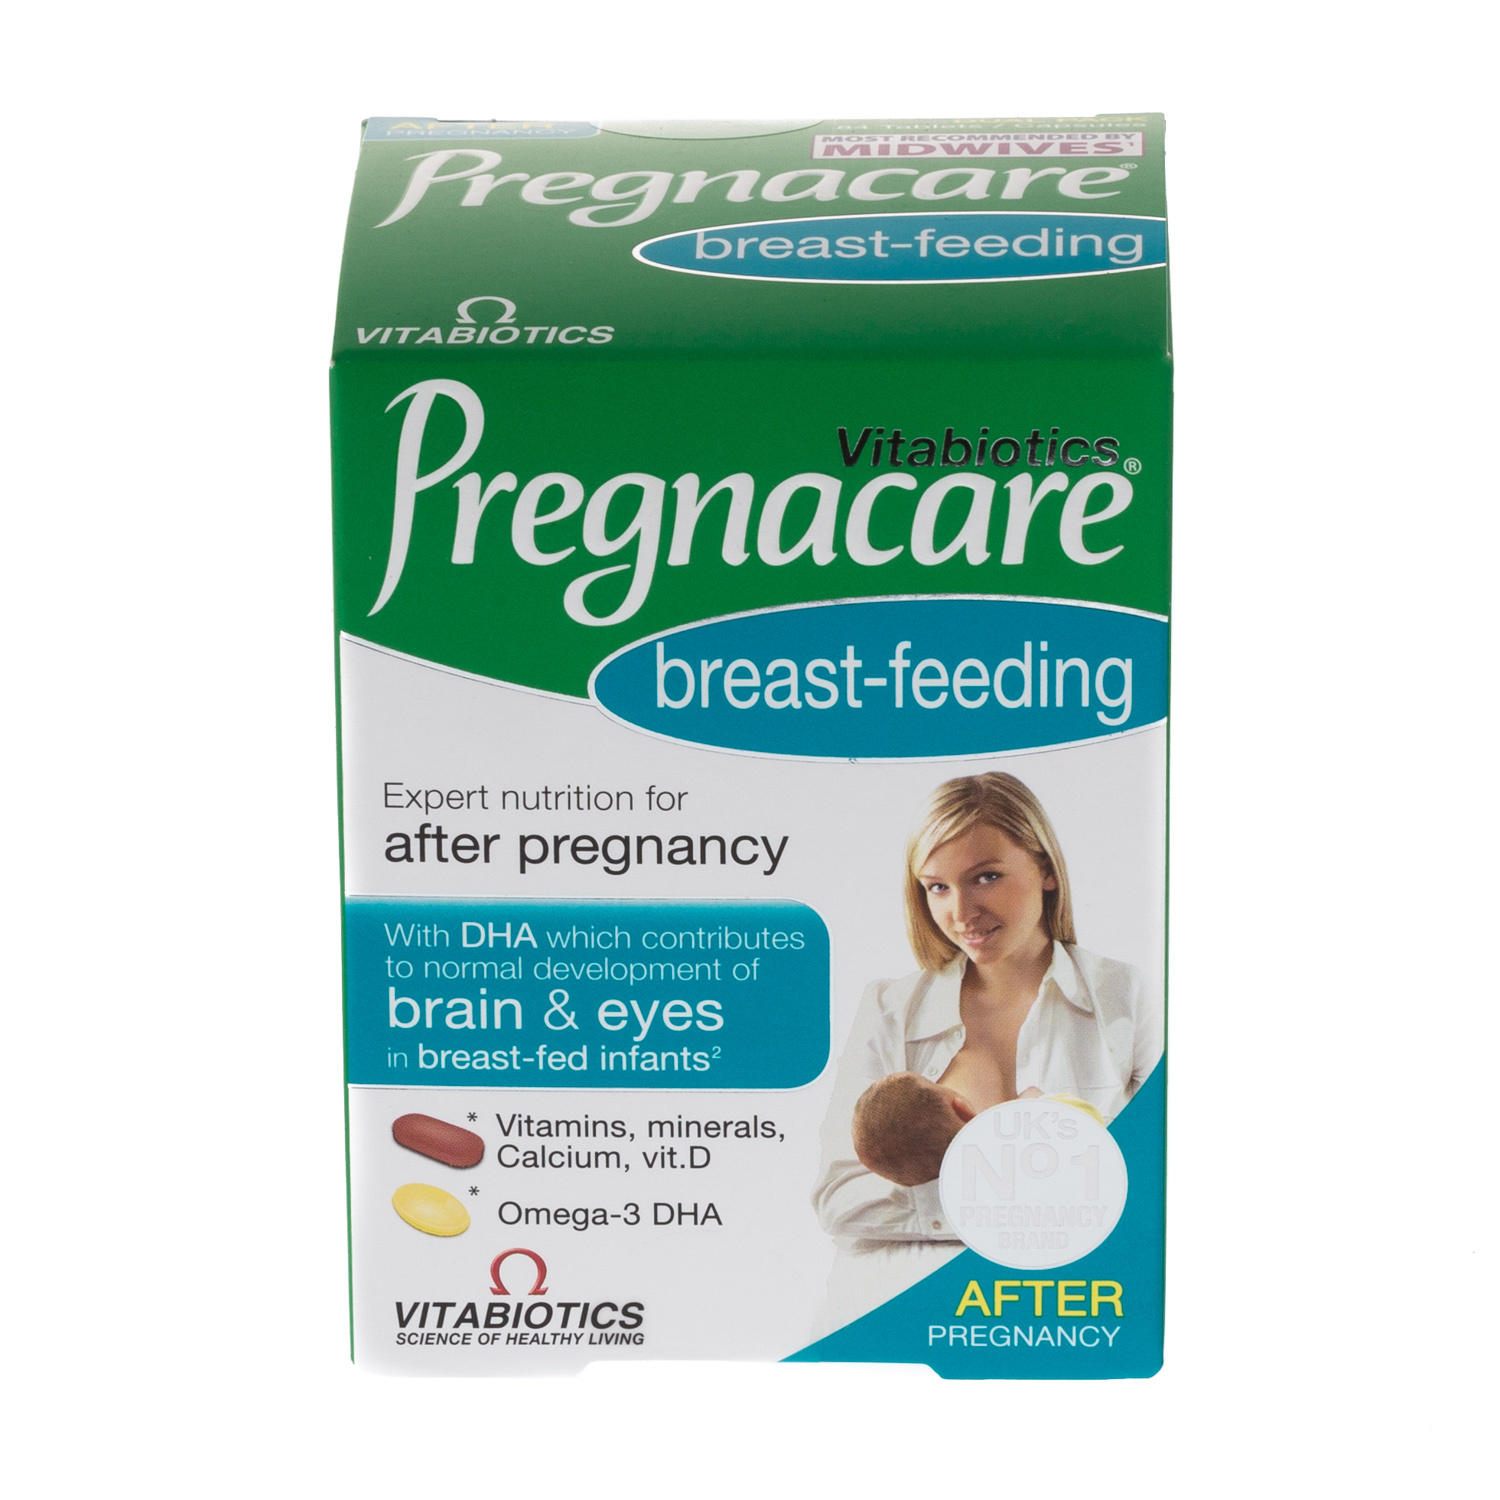 Vitabiotics Pregnacare BreastFeeding Capsules